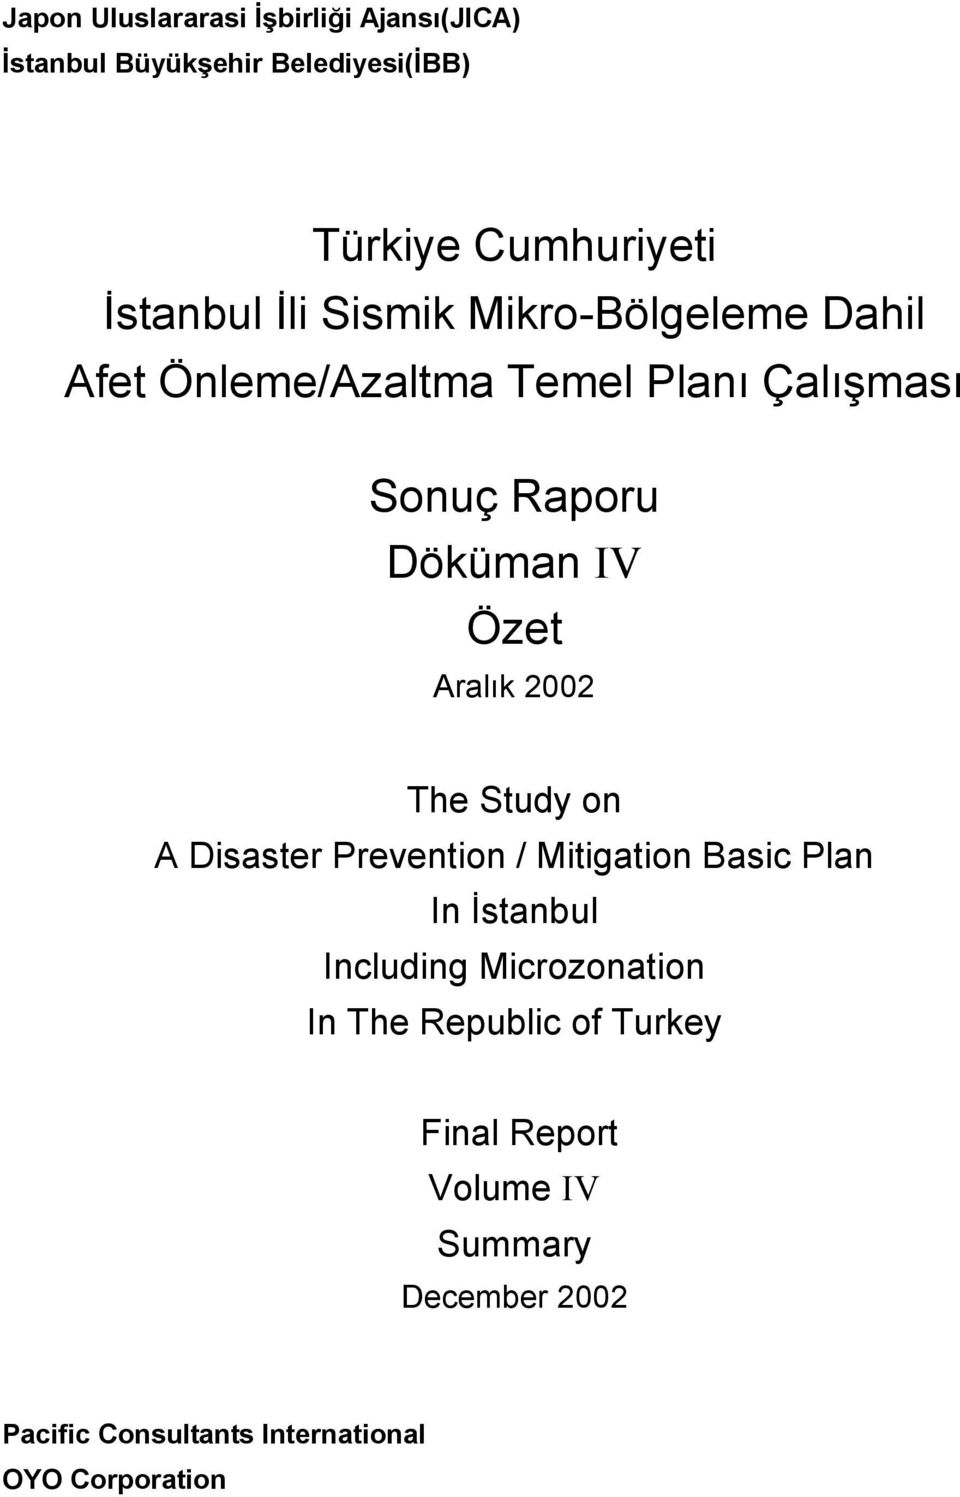 Aralık 2002 The Study on A Disaster Prevention / Mitigation Basic Plan In İstanbul Including Microzonation In